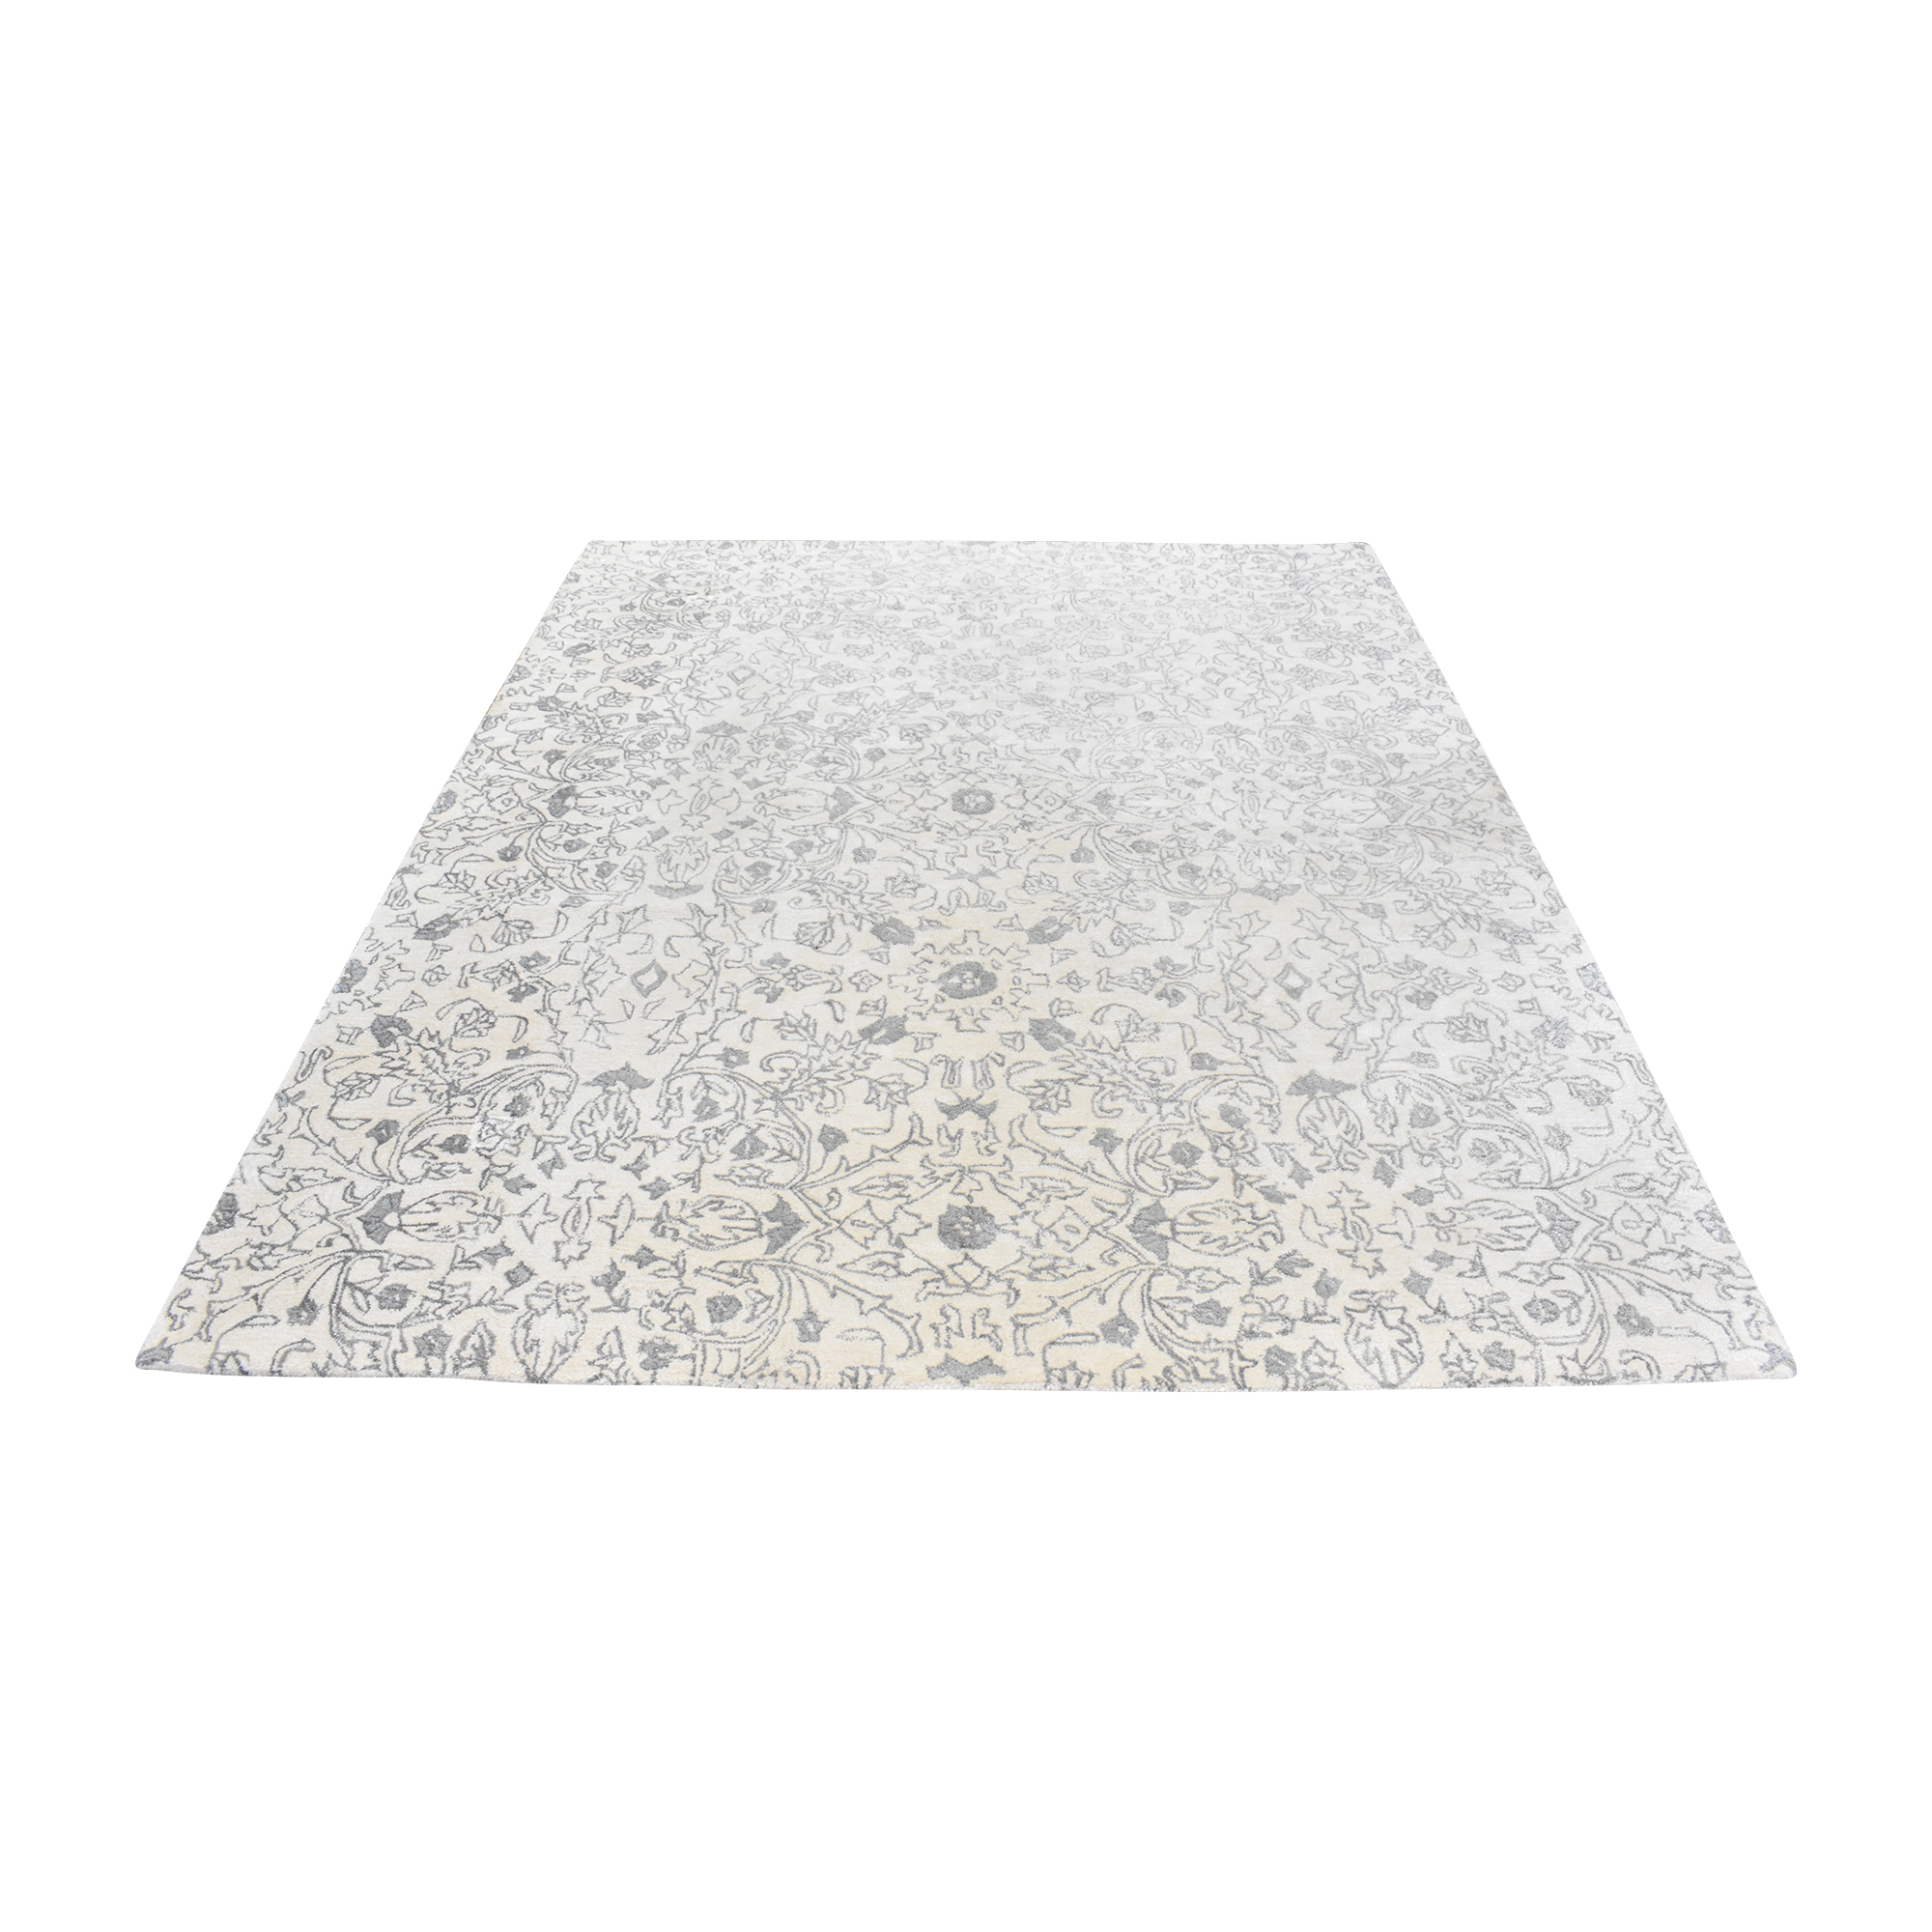 Bashian Rugs Bashian Rugs Greenwich Area Rug light gray and white